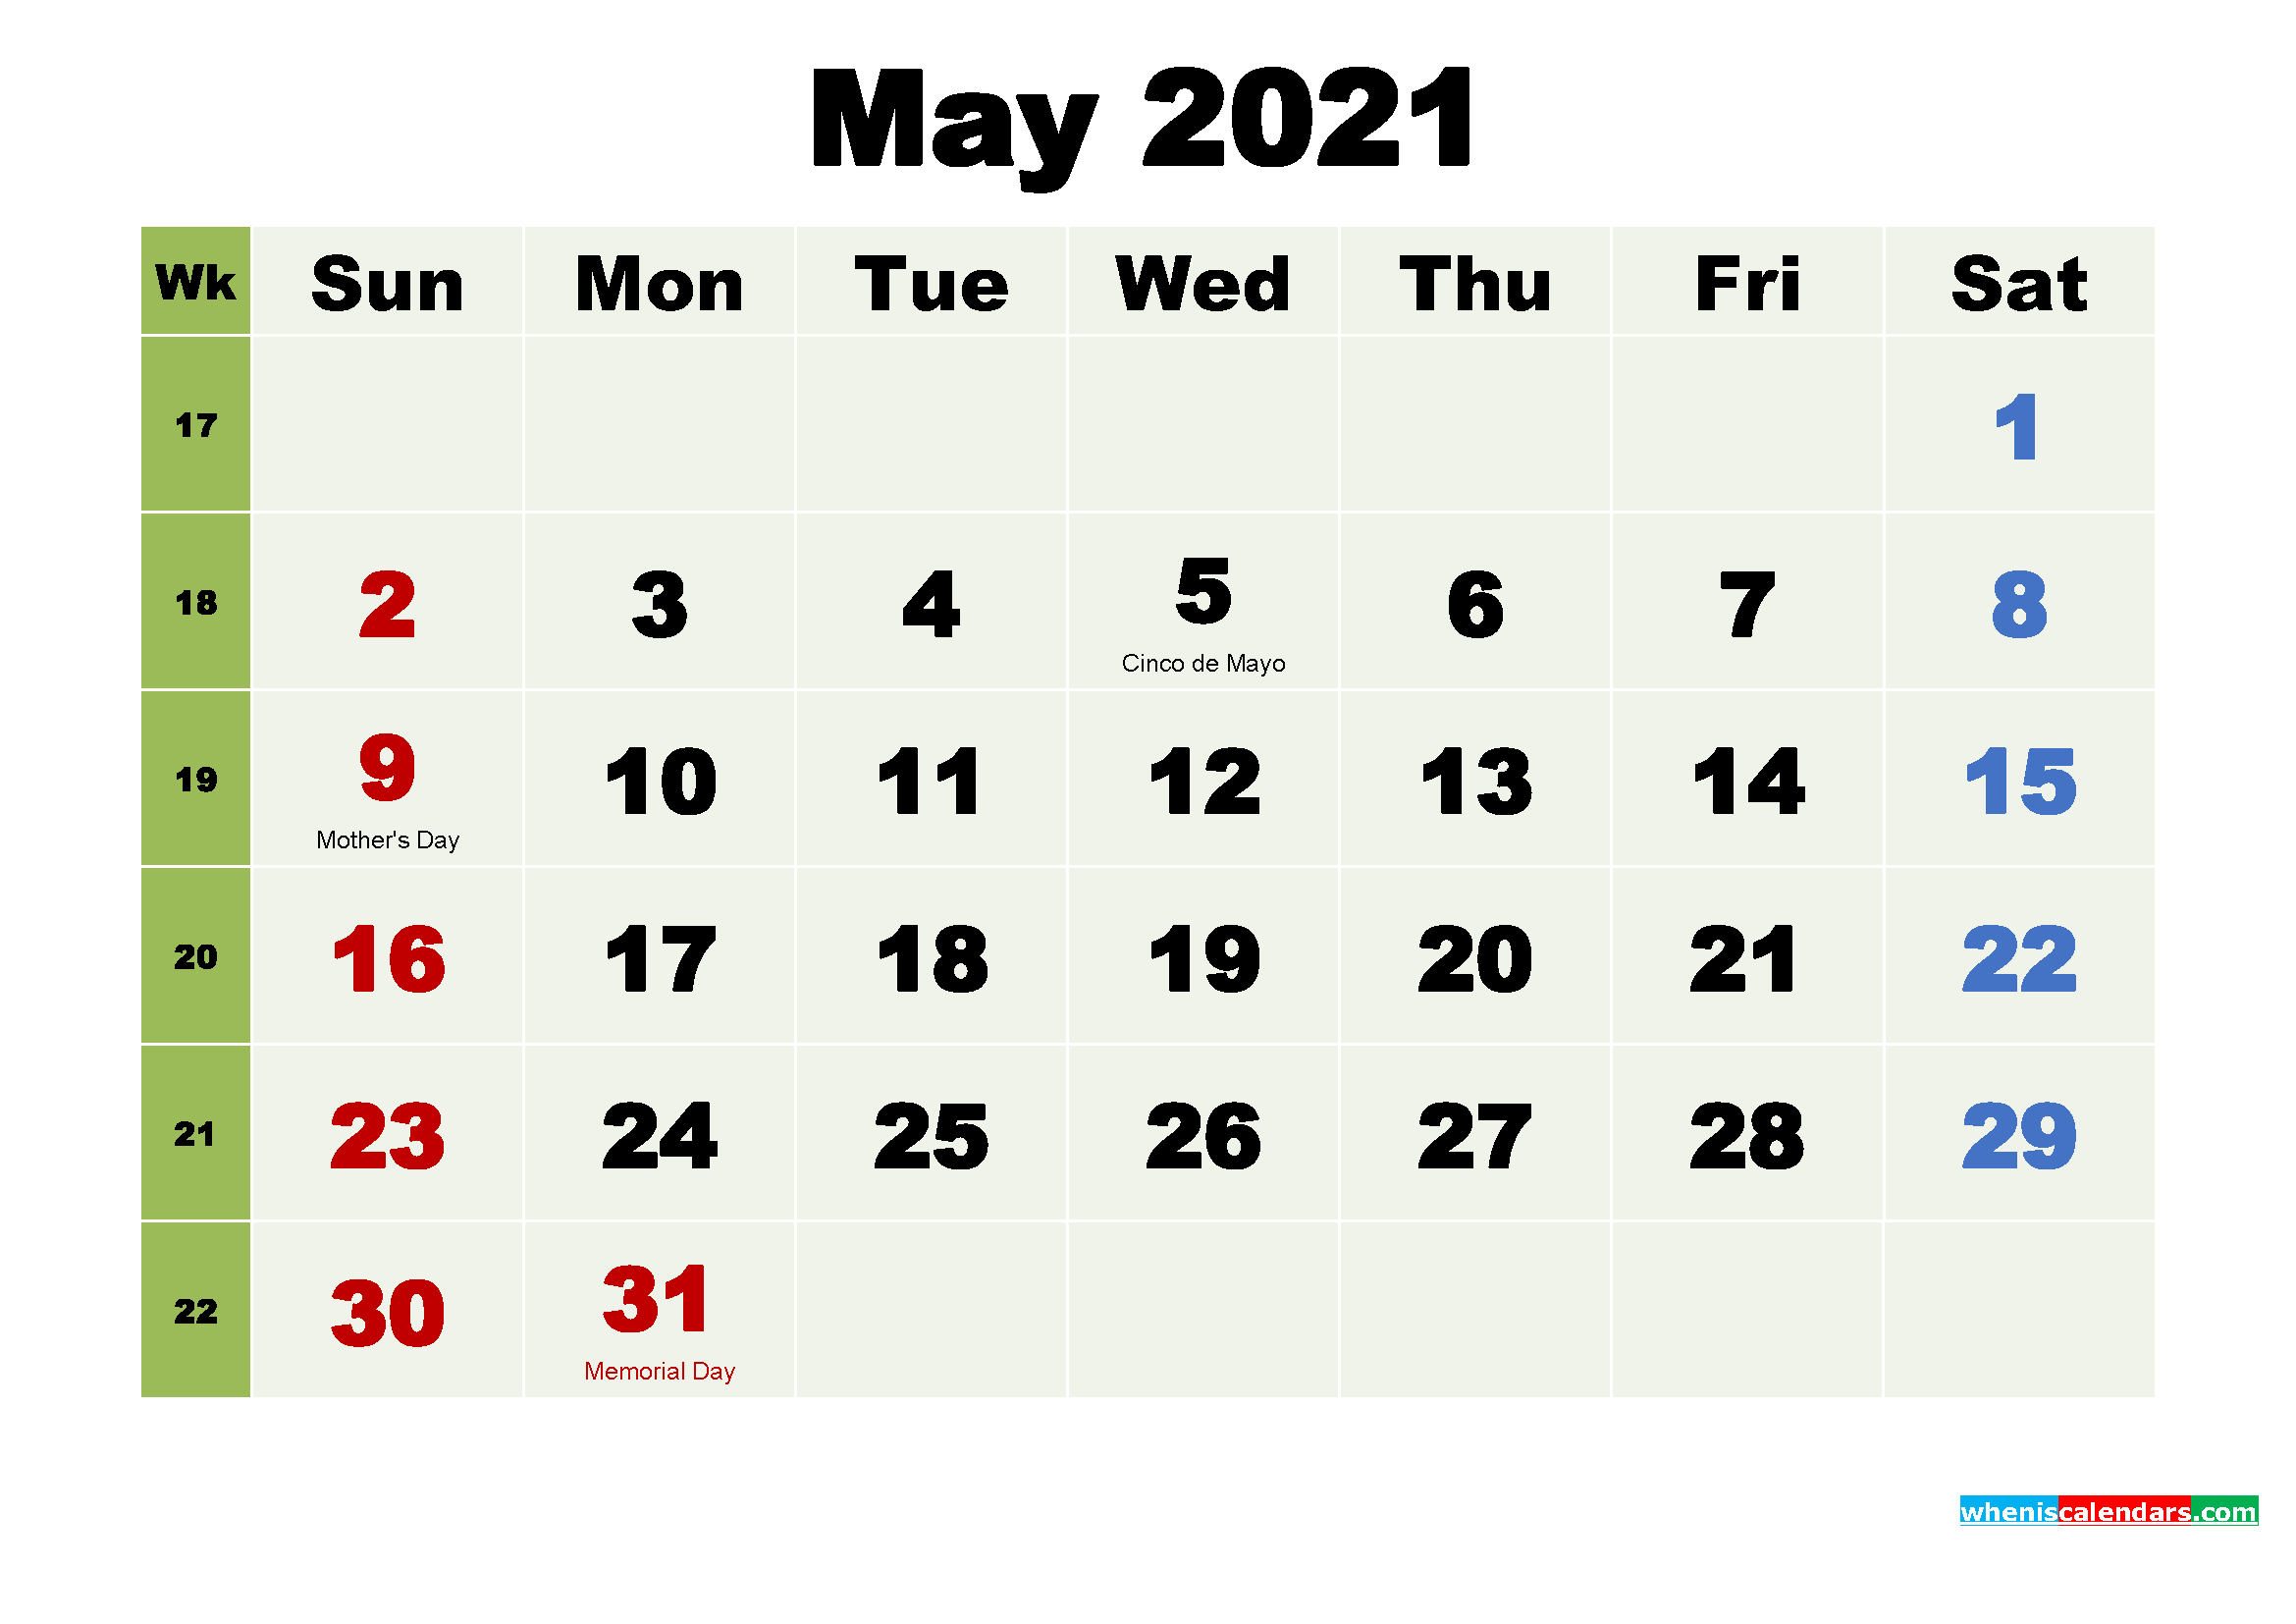 Printable May 2021 Calendar by Month